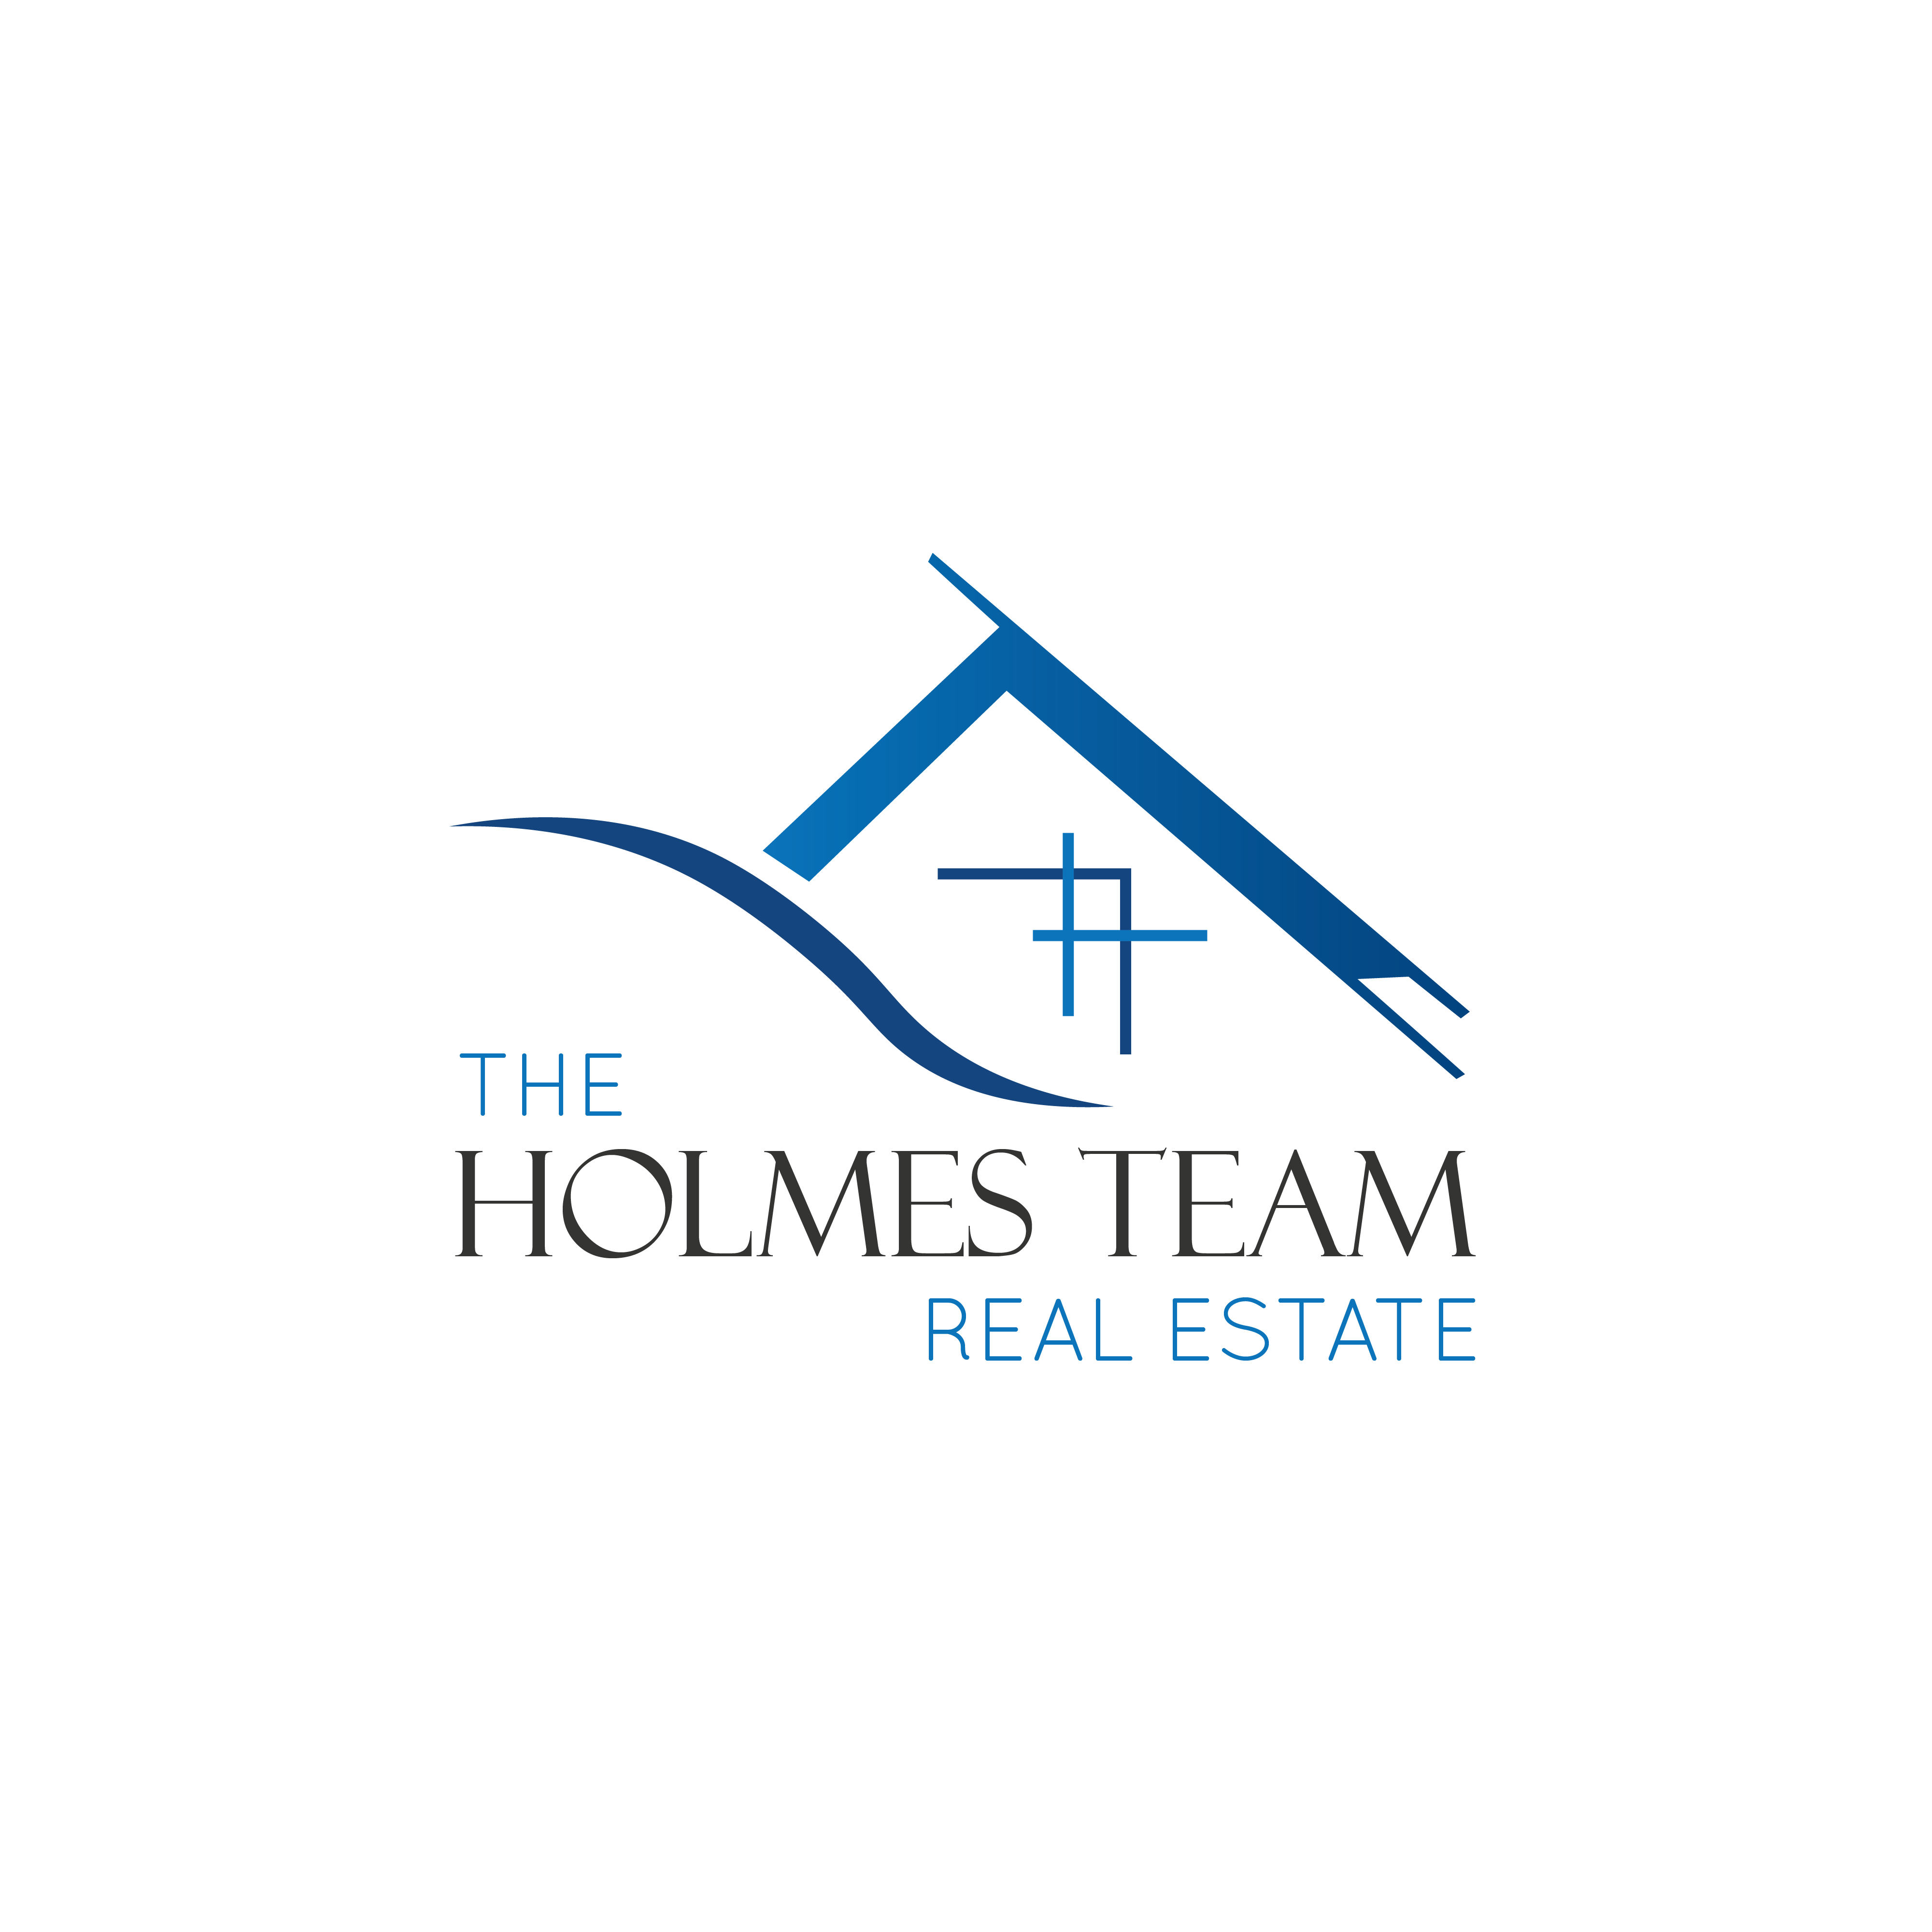 The Holmes Team